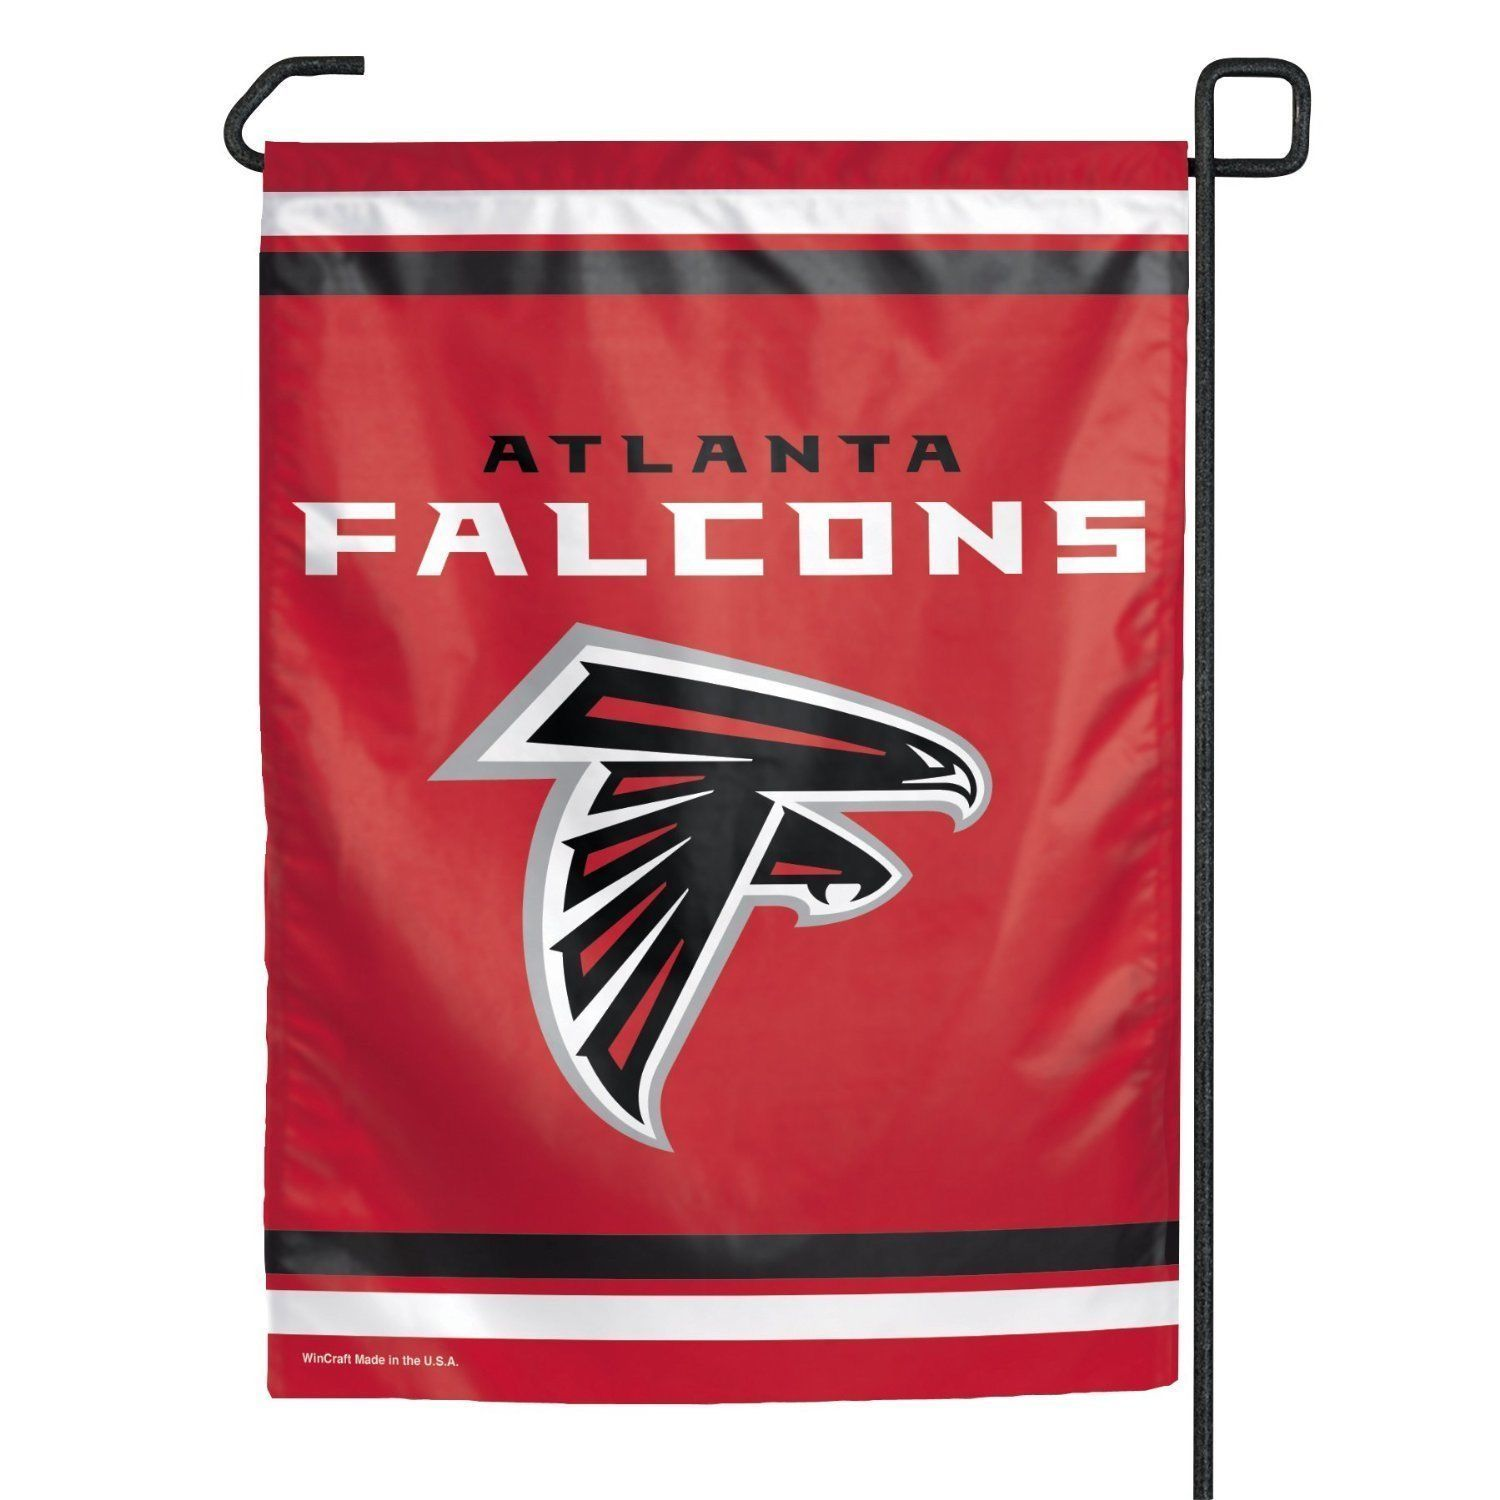 "ATLANTA FALCONS TEAM GARDEN WALL FLAG BANNER 11"" X 15"" NFL FOOTBALL"